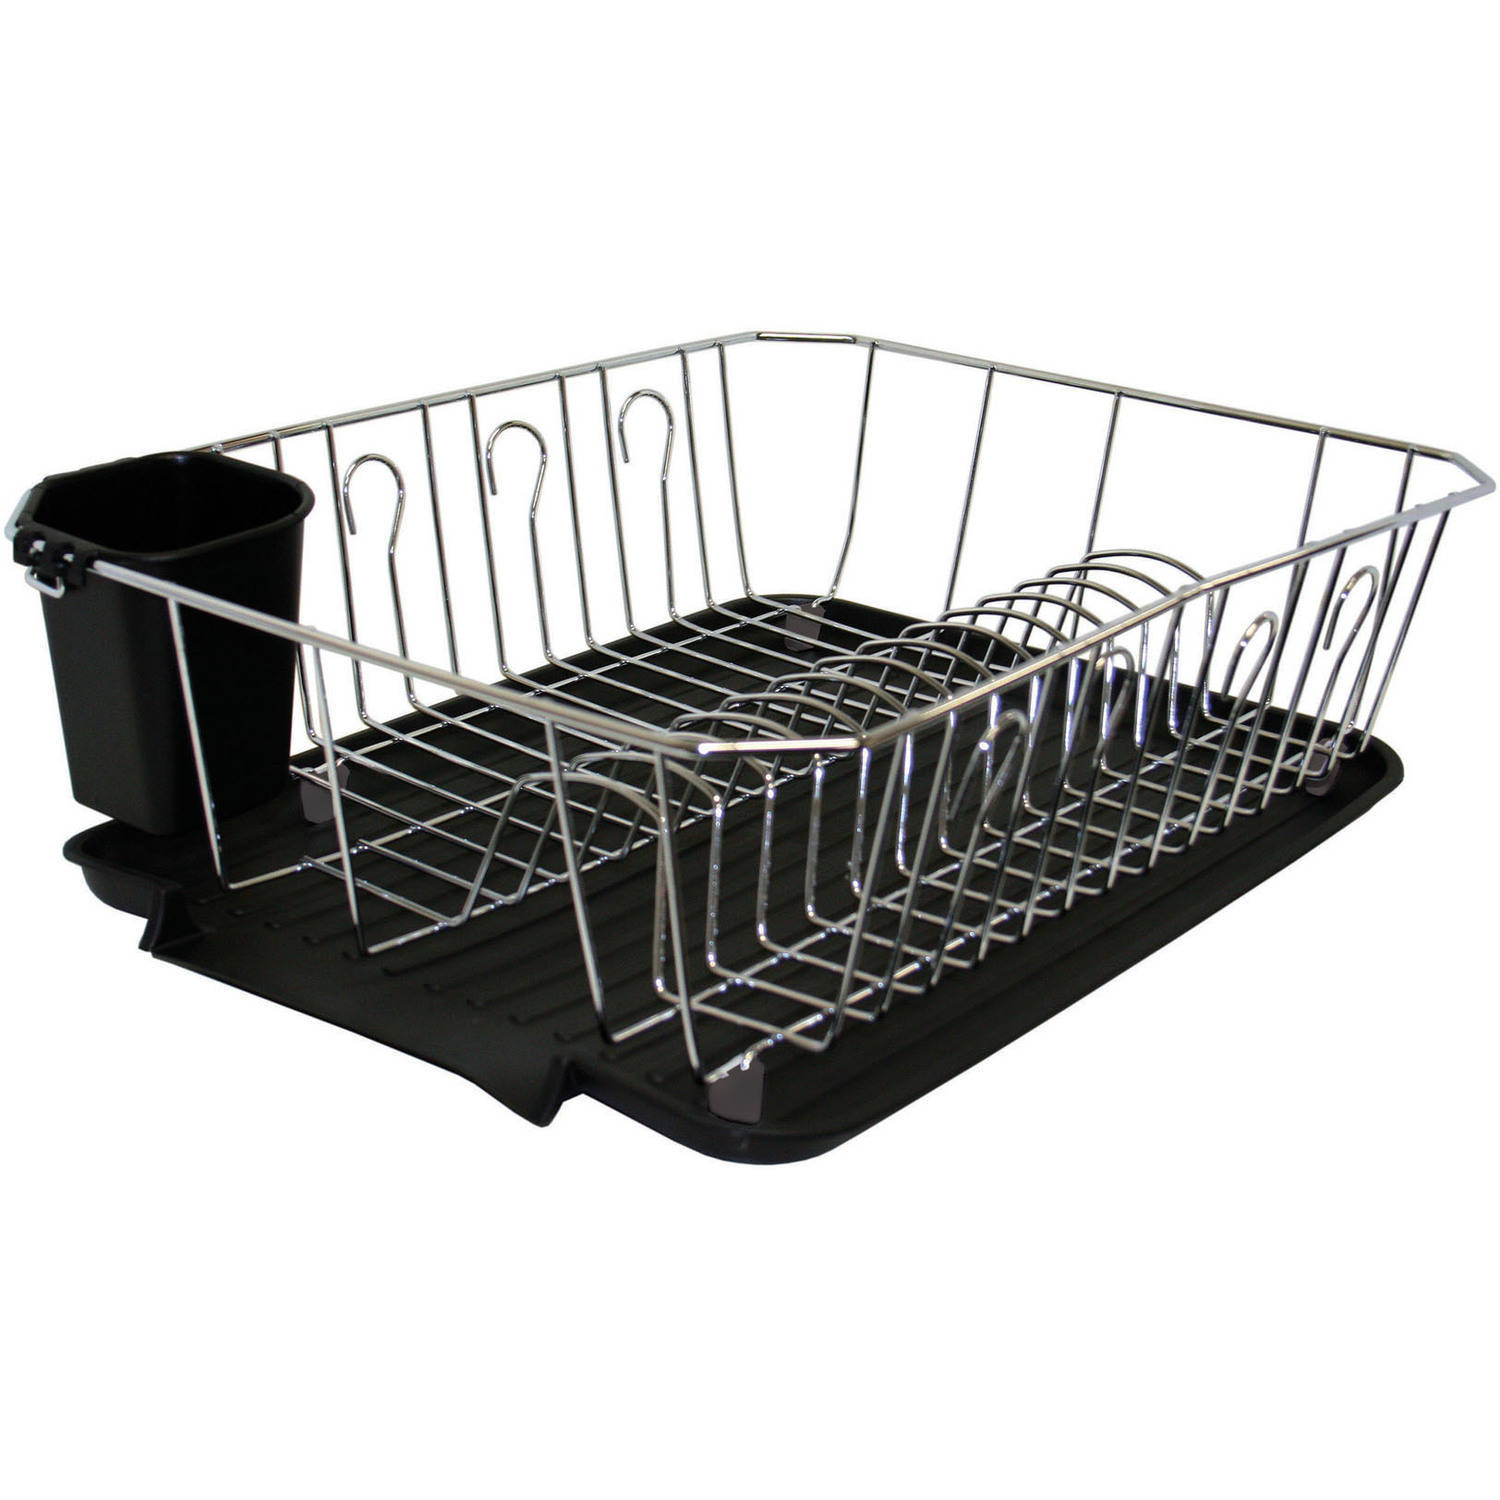 Chrome Dish Rack by Kennedy International, INC.